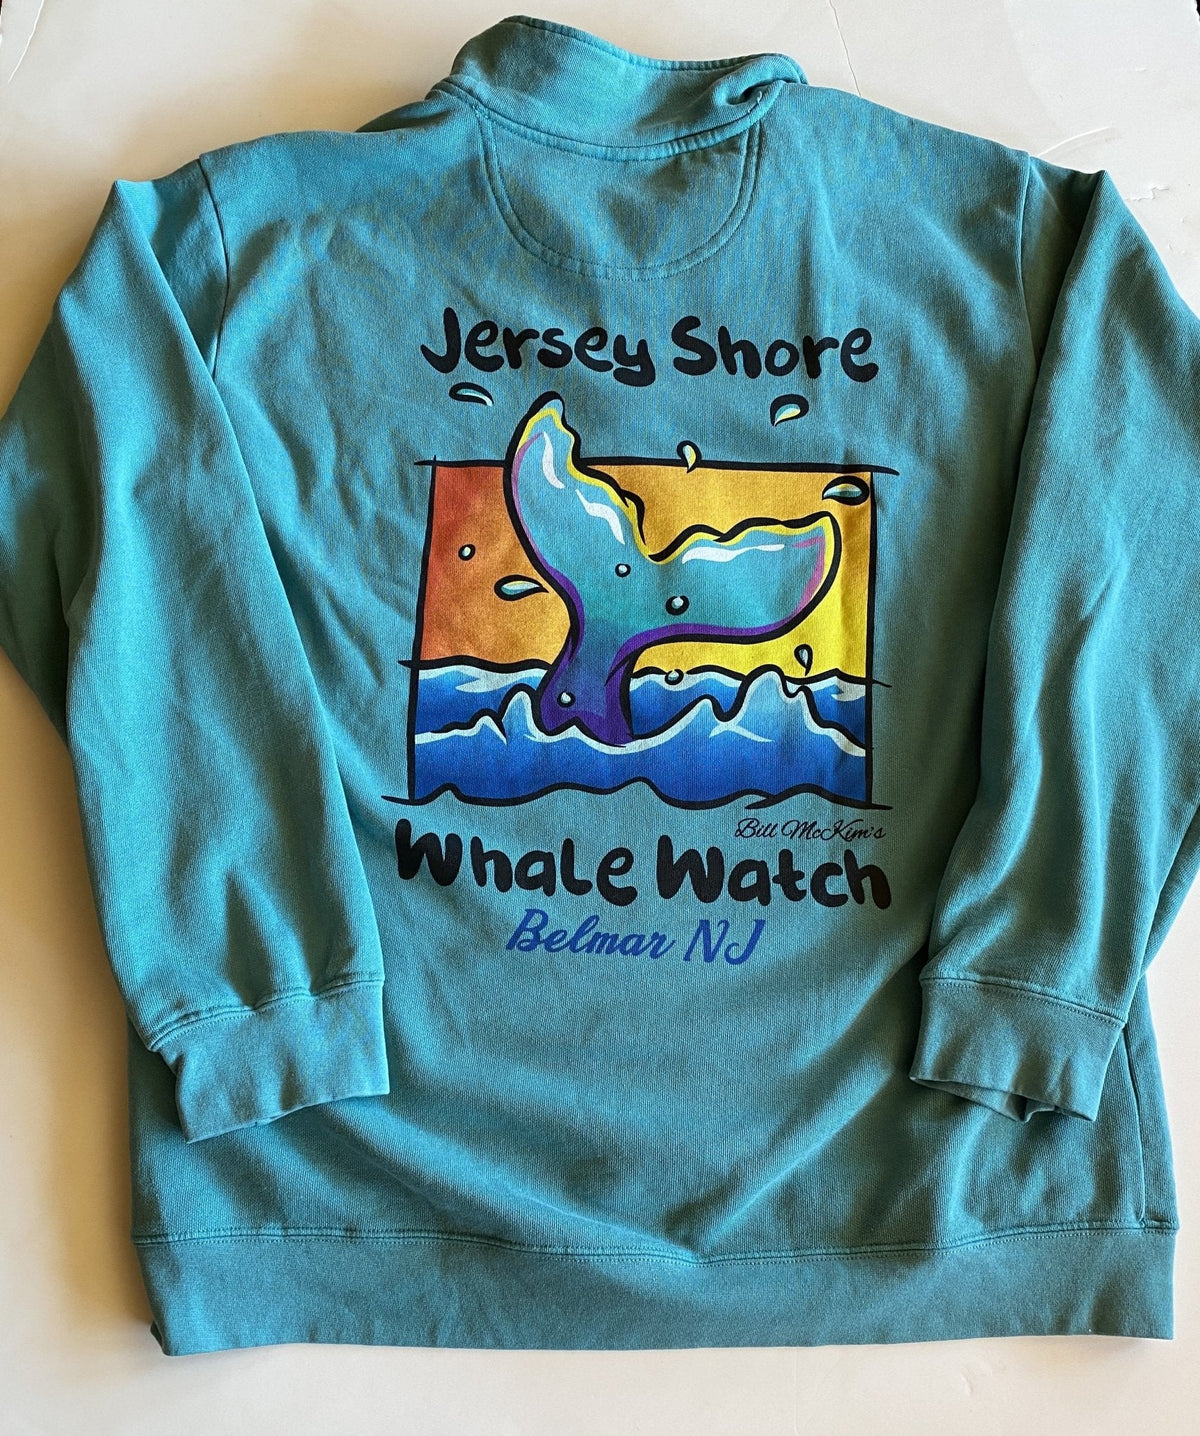 1/4 Zip Jersey Shore Whale Watch Heavyweight Sweatshirt - Bill McKim Photography -Jersey Shore whale watch tours